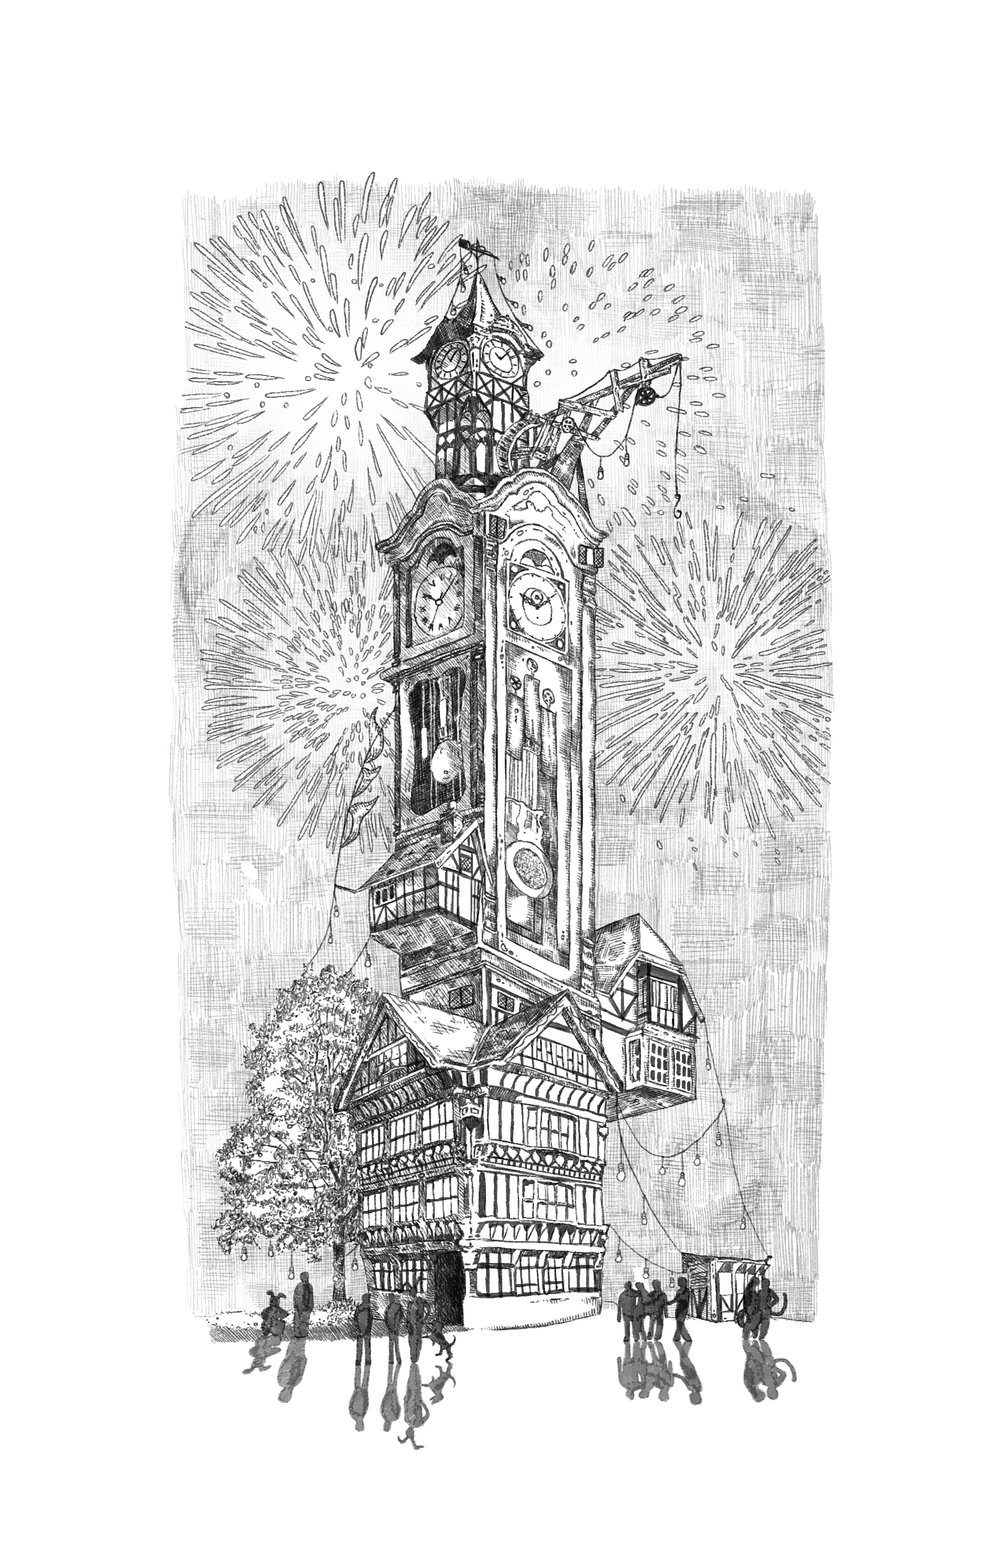 Clock towerfireworks.jpg